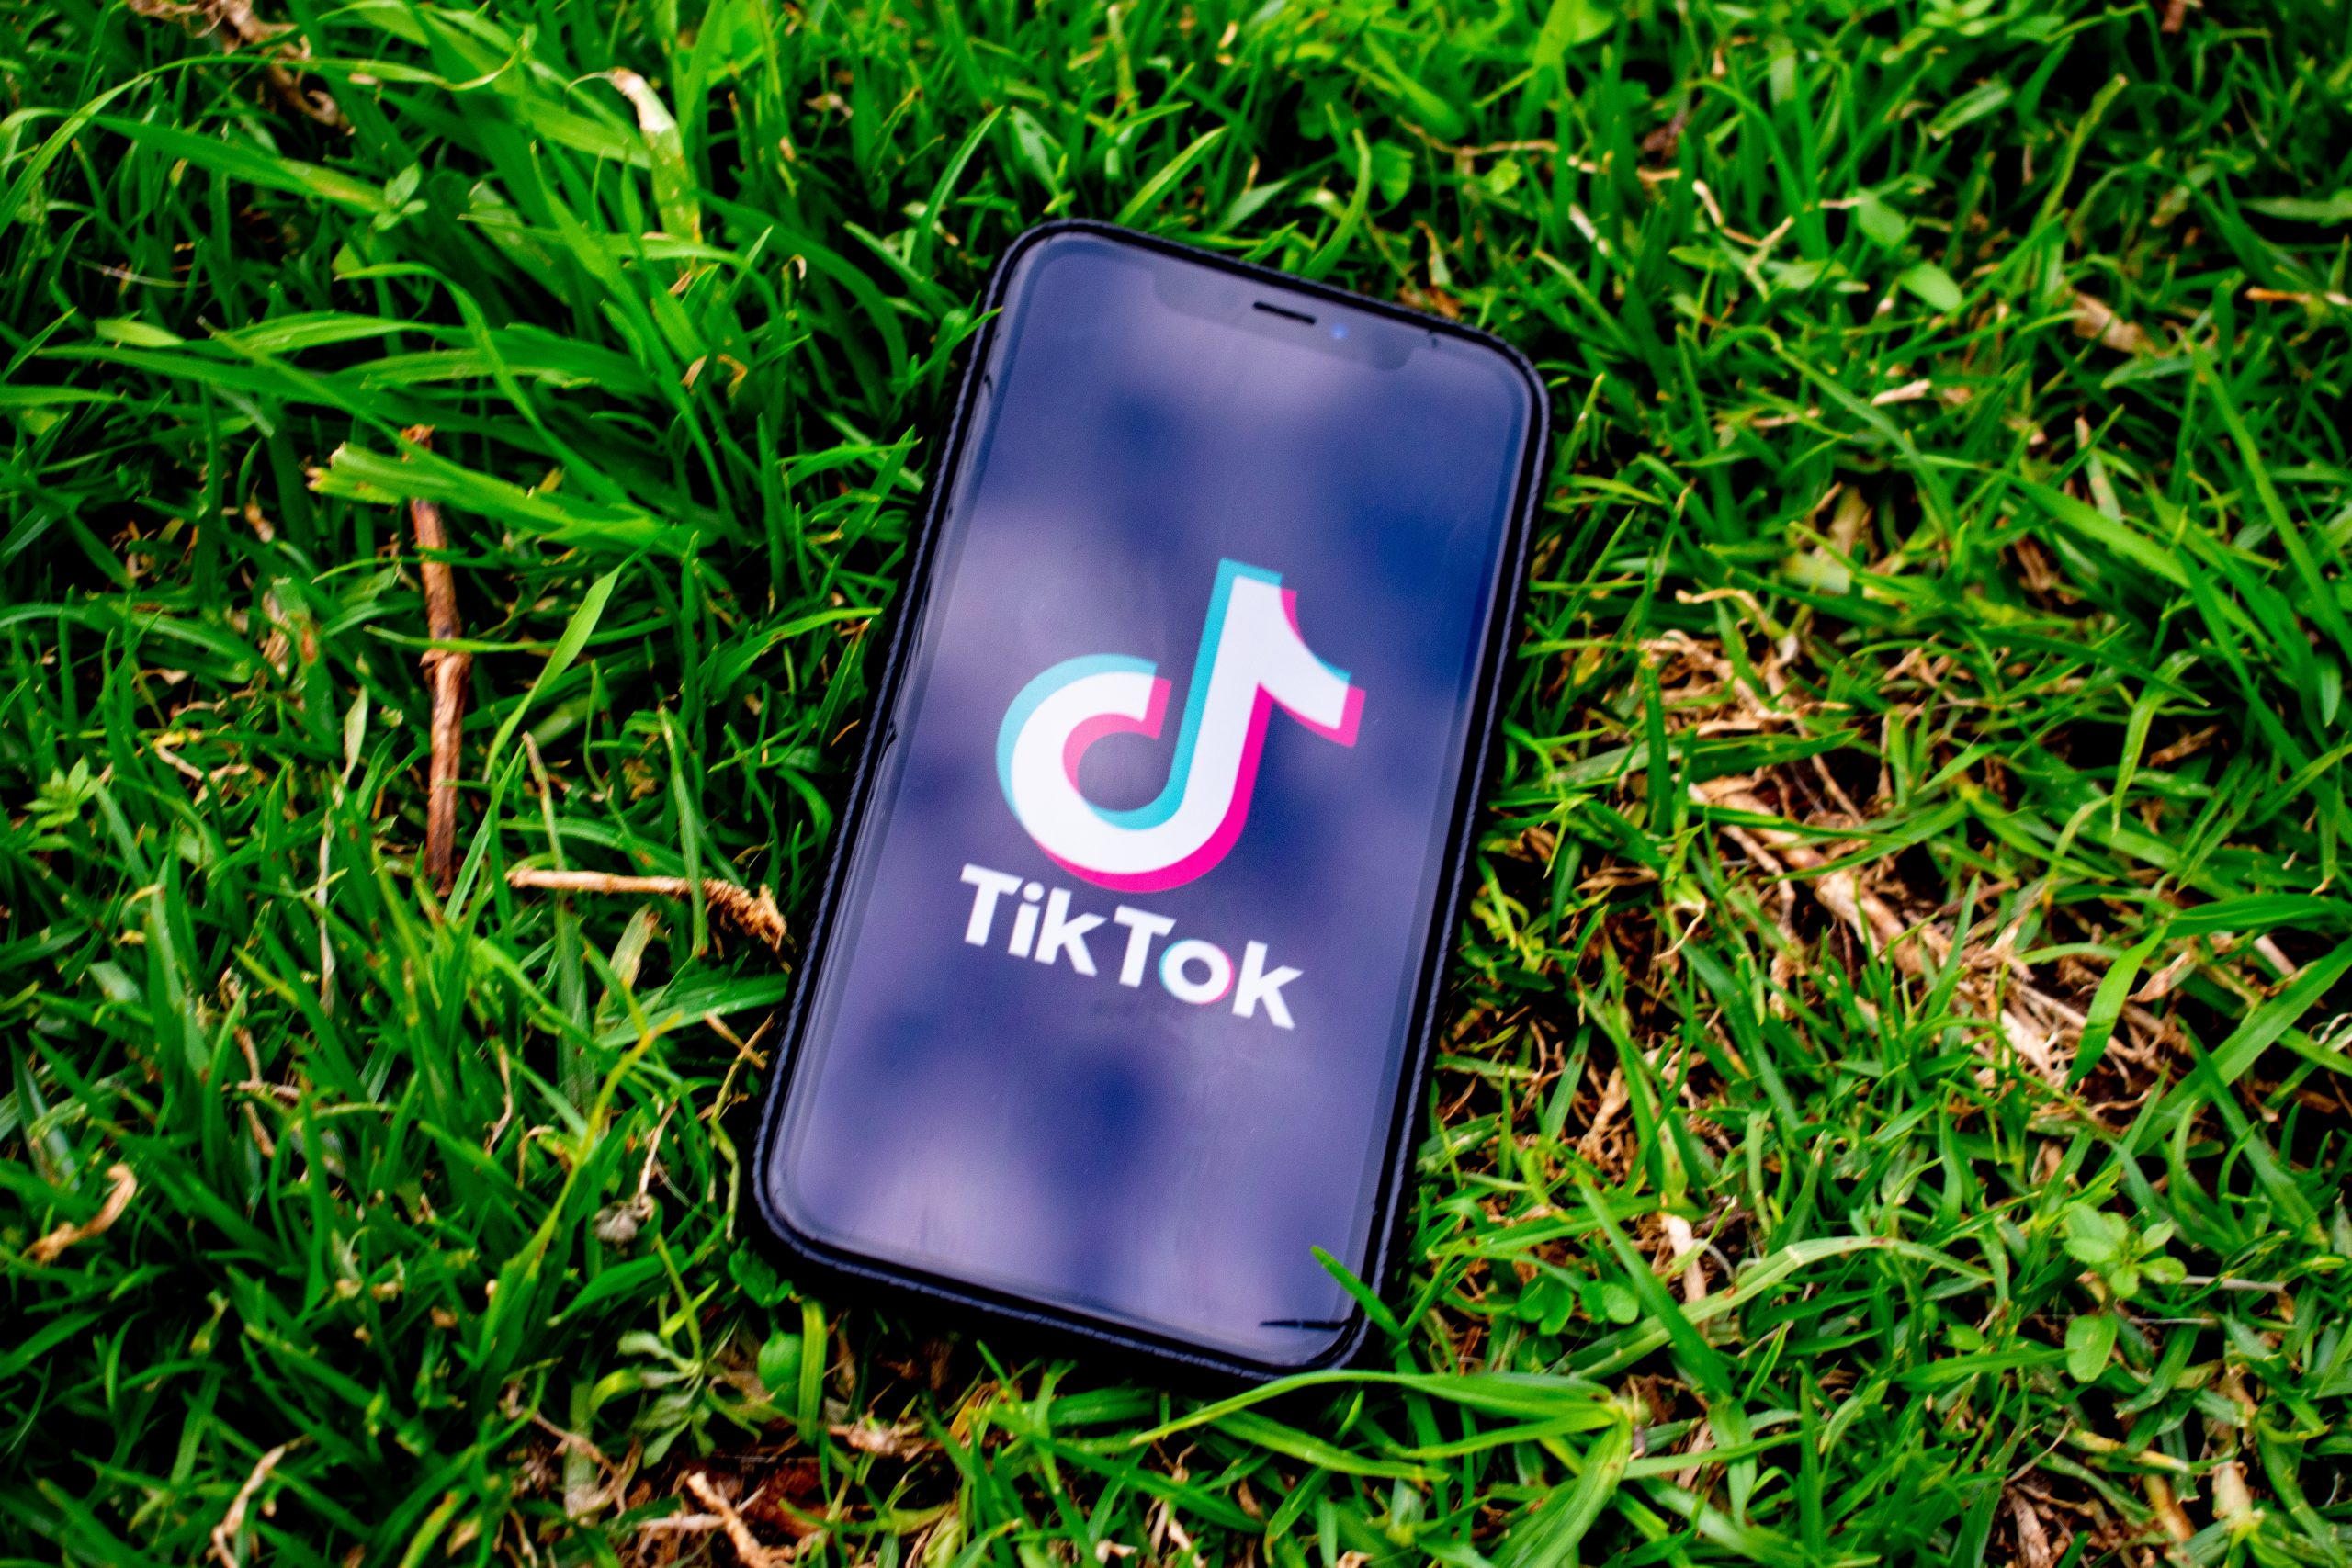 Why Did Wells Fargo Tell Employees to Remove Tiktok from Company Owned Mobile Devices?